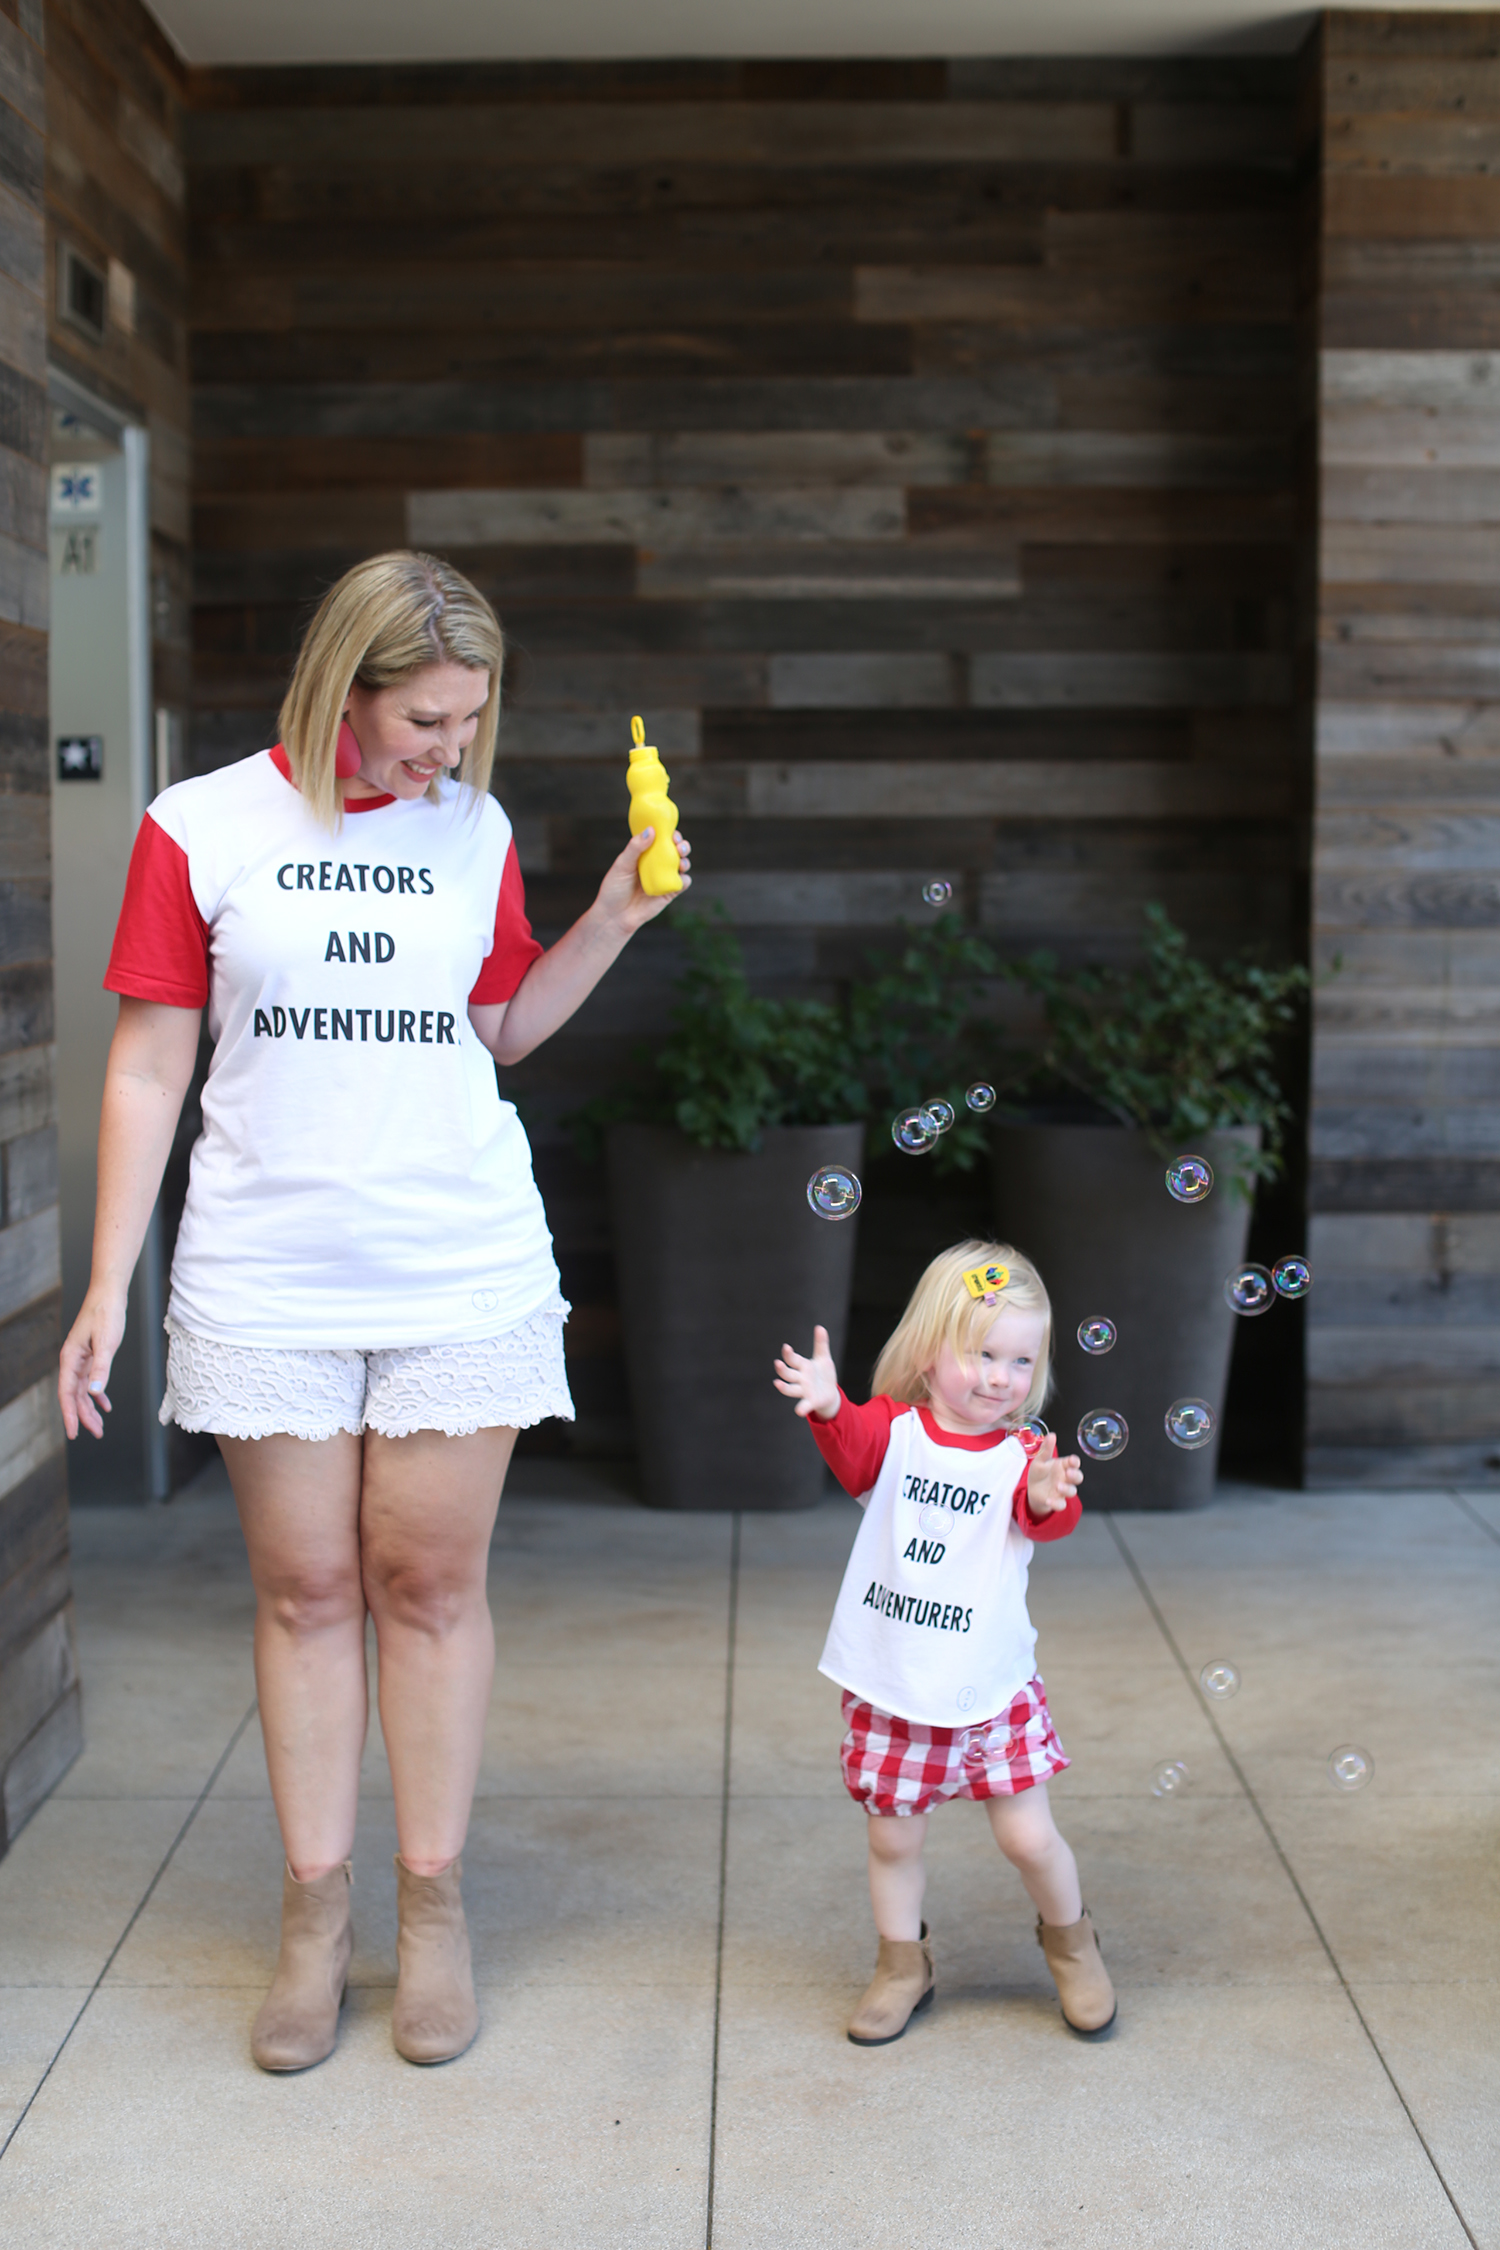 How cute is this mommy and me outfit? I love the creators and adventurers tee and gingham shorts!